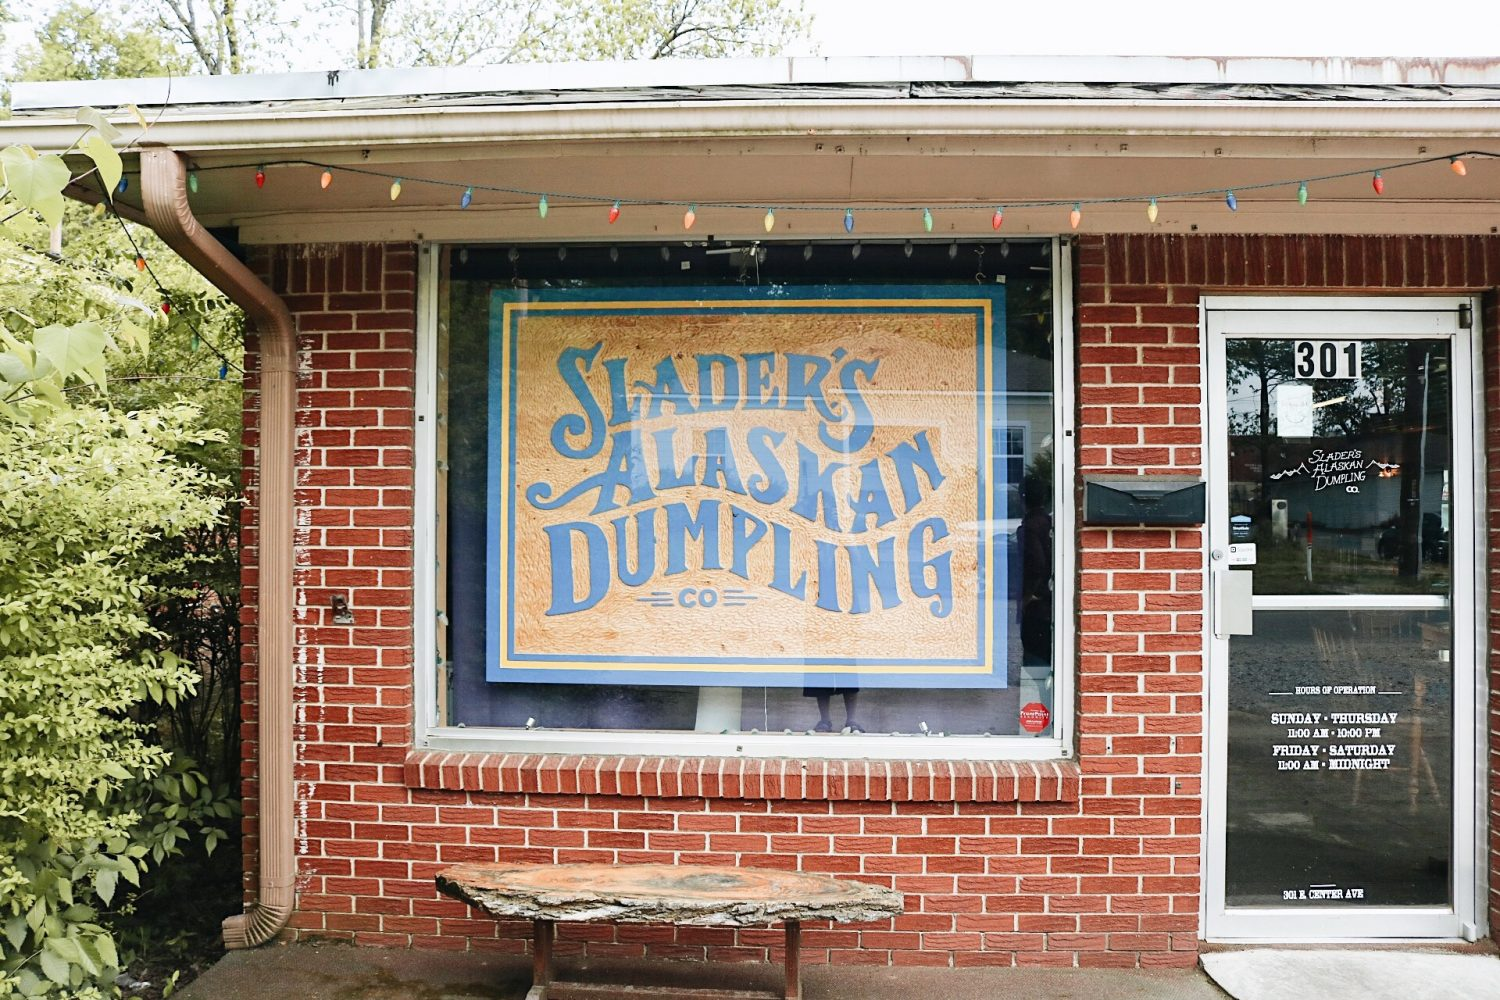 You'll find Slader's Alaskan Dumplings by looking for the beautifully crafted wooden sign hanging in the front window.